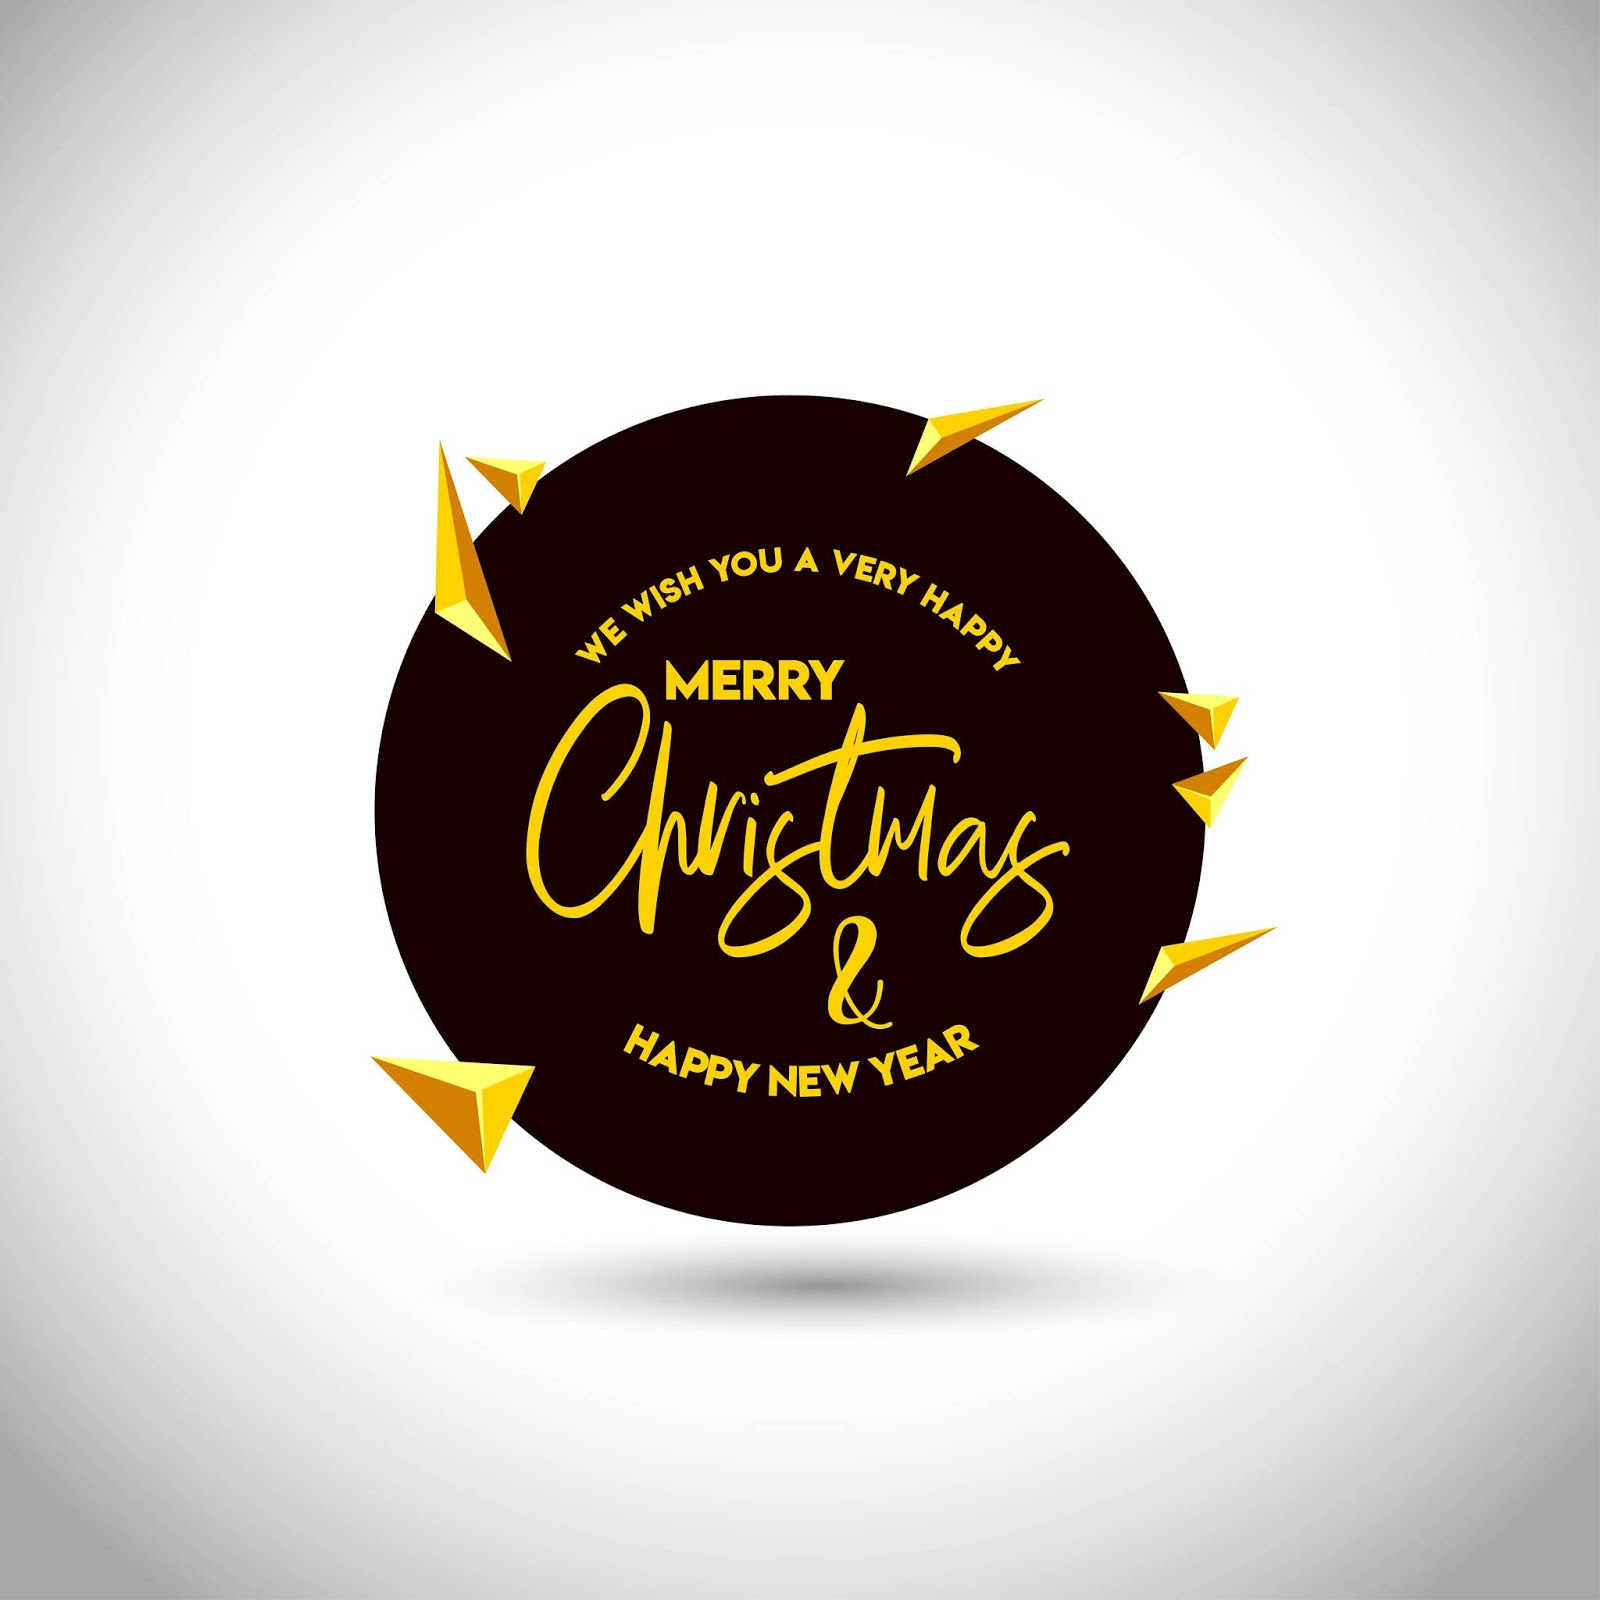 Christmas Card Design With Elegant Design Free Download Vector CDR, AI, EPS and PNG Formats